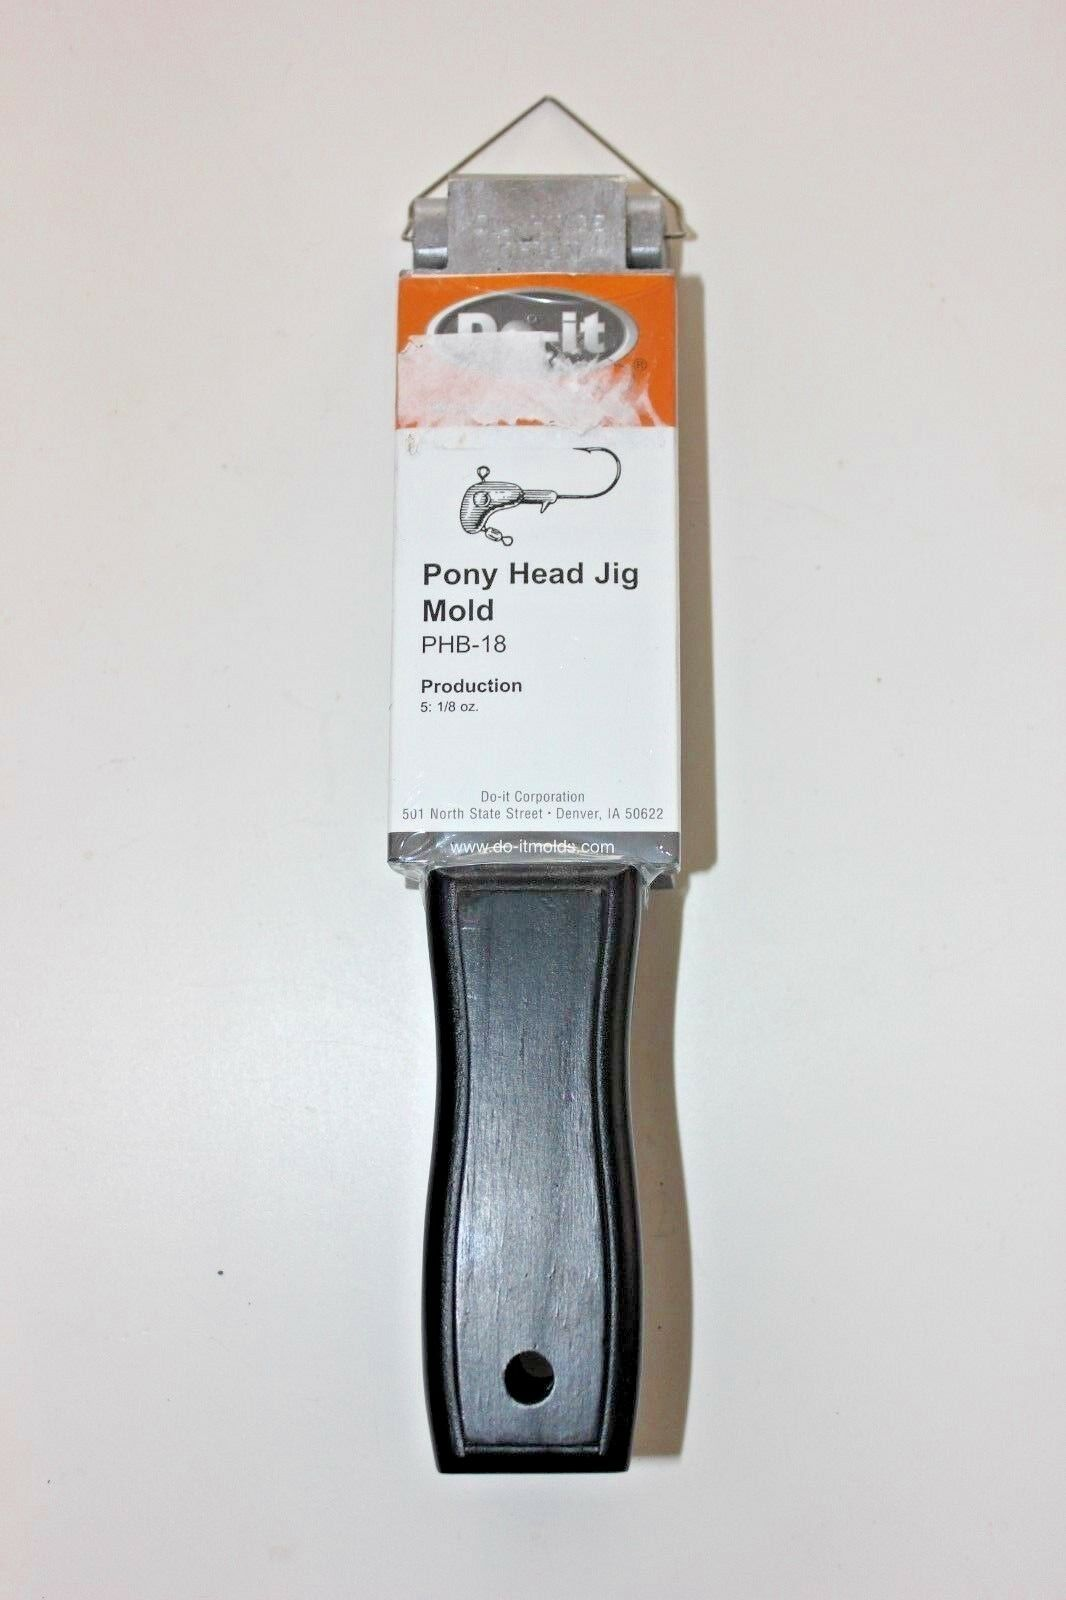 DO-IT DO-IT DO-IT MOLDS PHB-18 PONY HEAD JIG MOLD ccff37